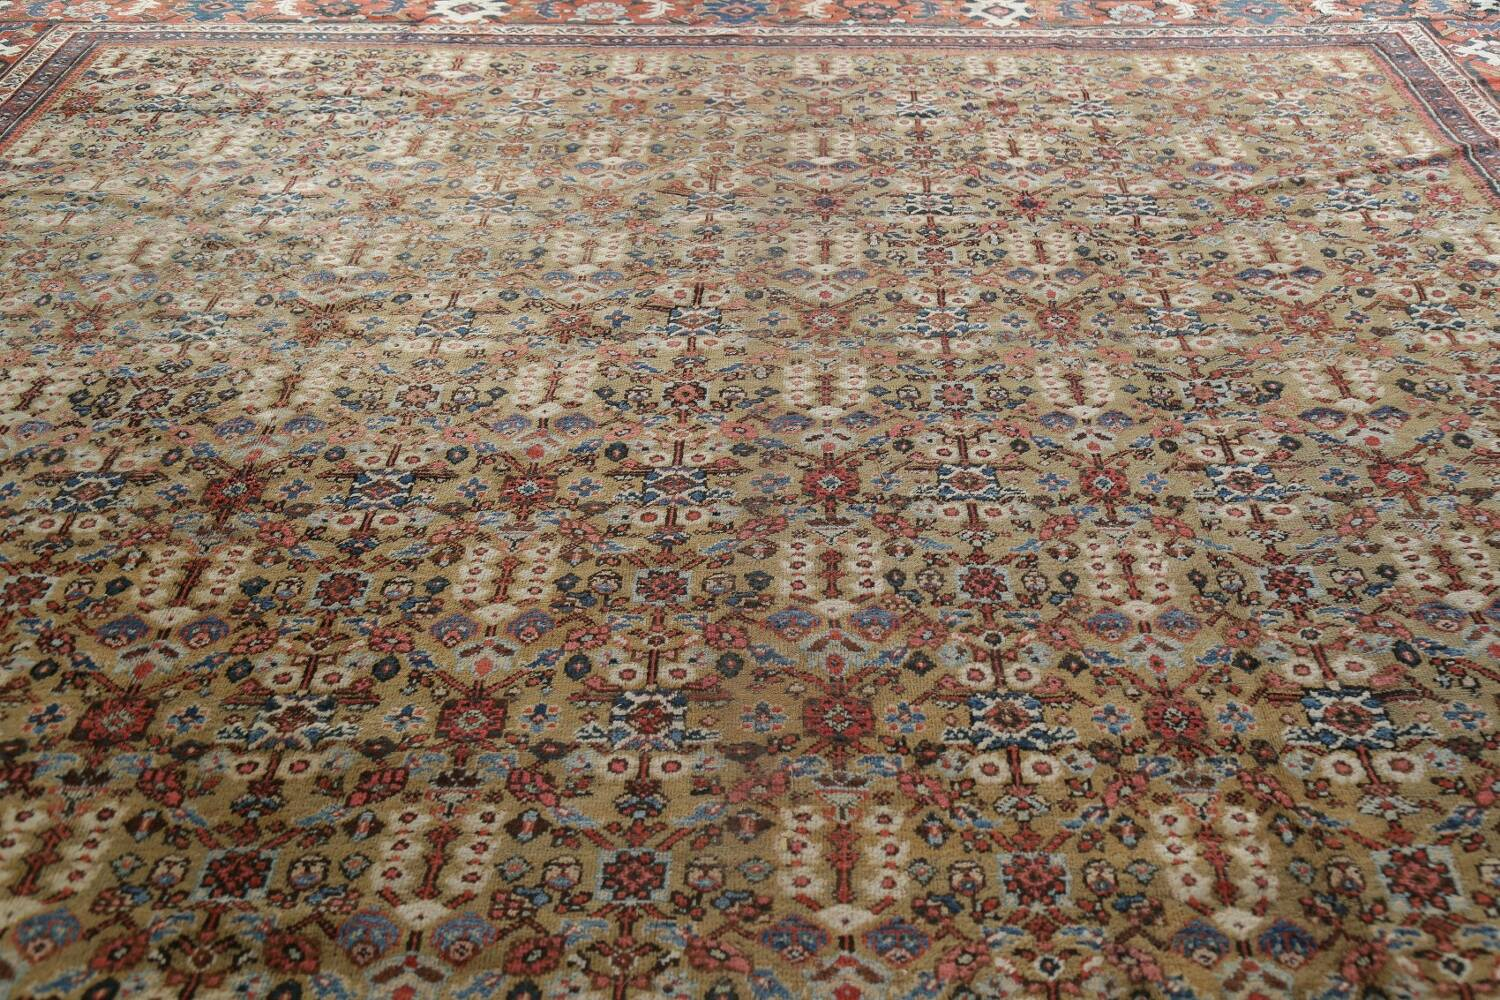 Antique Pre-1900 Sultanabad Persian Rug 13x22 Large image 15